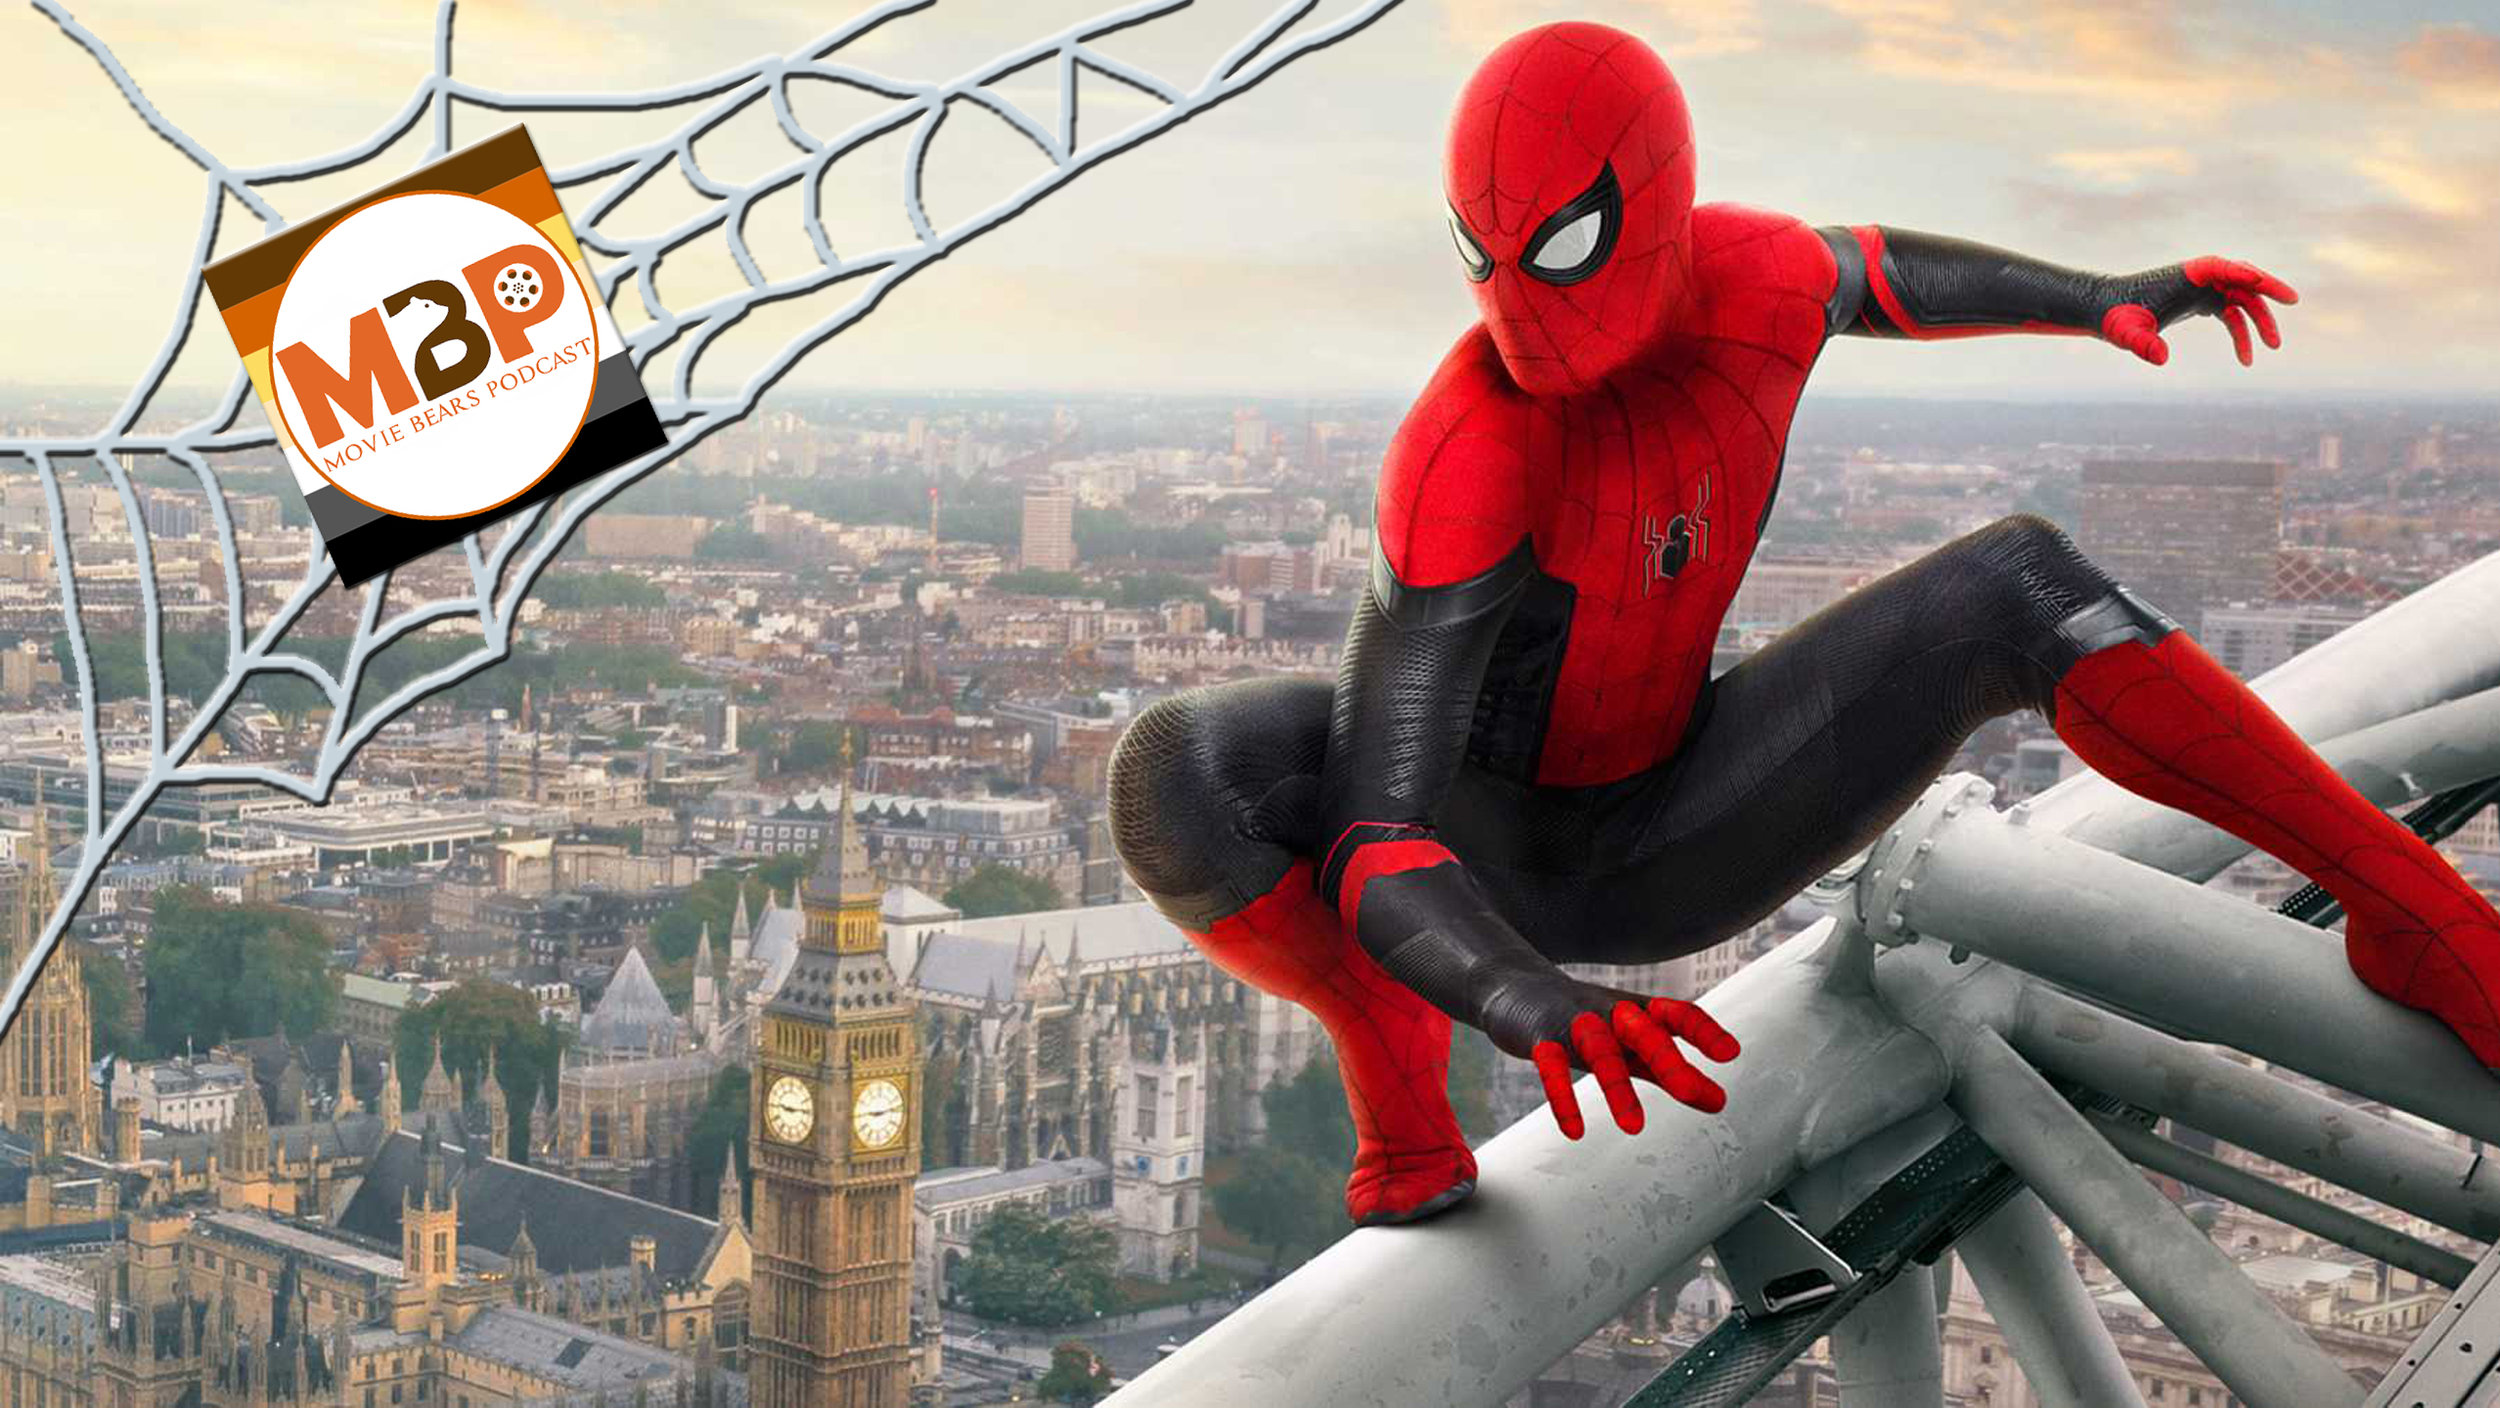 MBP e330 - 'Spider-Man: Far From Home' (7/9/19)    Pack your bags, we're going on a European vacation! Yep, Brad, Jim, and Will are joining Peter Parker and his friends on their adventure abroad in 'Spider-Man: Far From Home!' How does the 23rd film in the Marvel Cinematic Universe stack up to, well, every film that came before, and most of all, to our expectations?? Listen here to find out and also catch up on some movie interesting news!